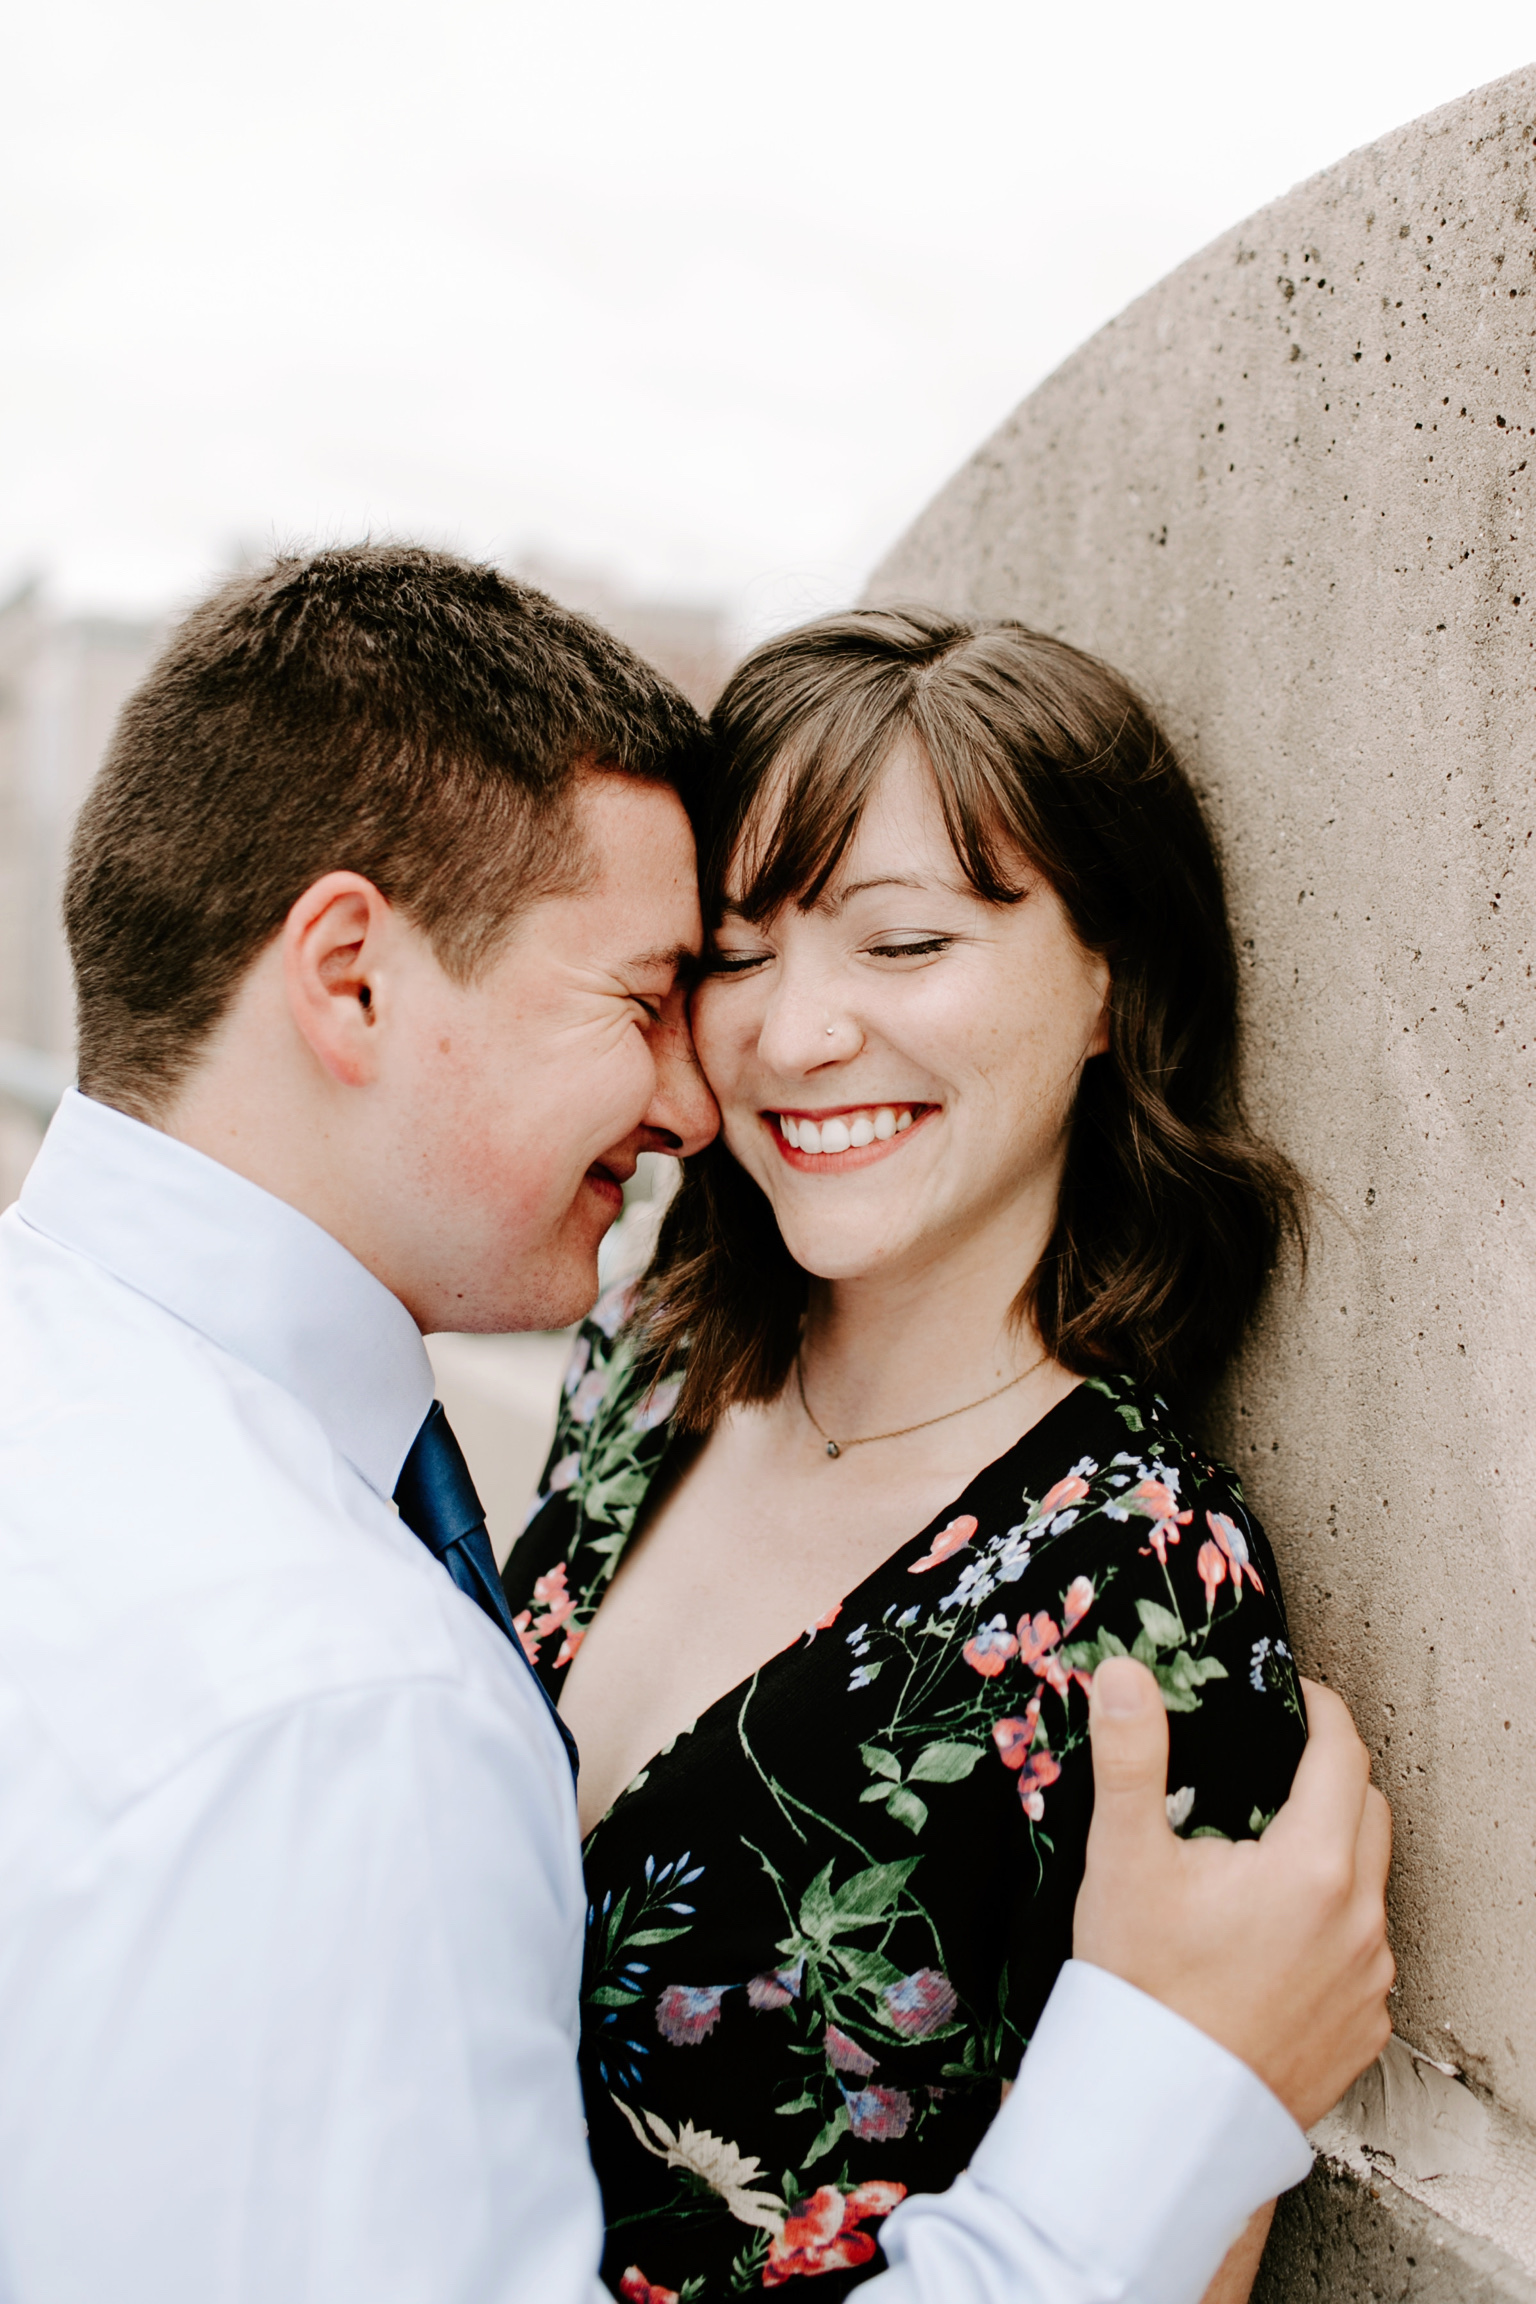 Emily and Davis Engagment Session Downtown Indianapolis Rooftop Emily Elyse Wehner Photography LLC-10.jpg